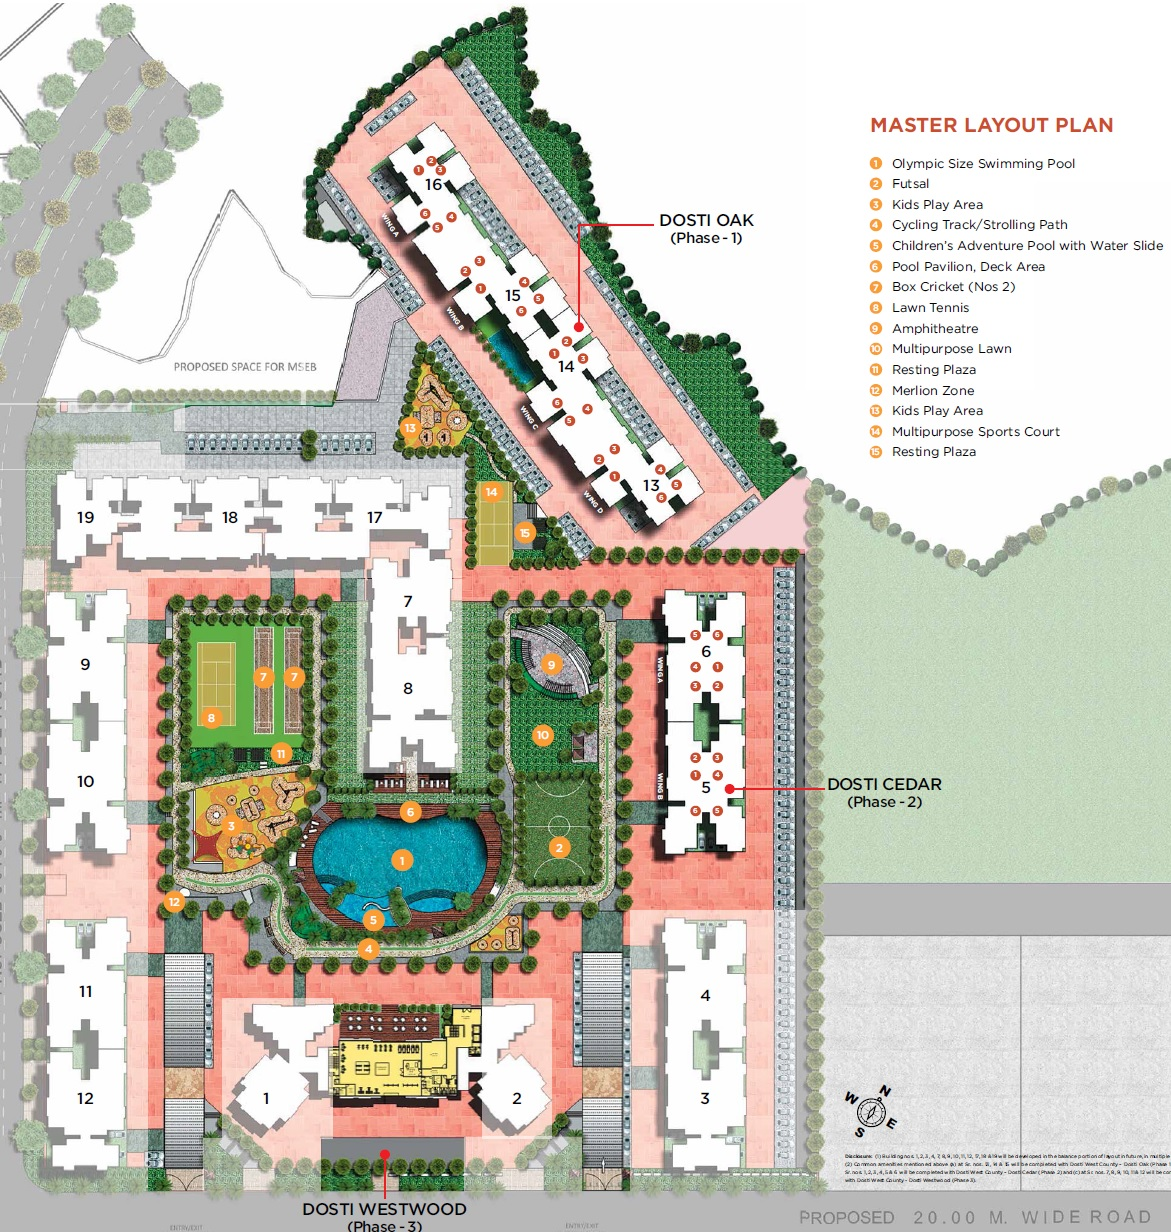 dosti west county master plan image1